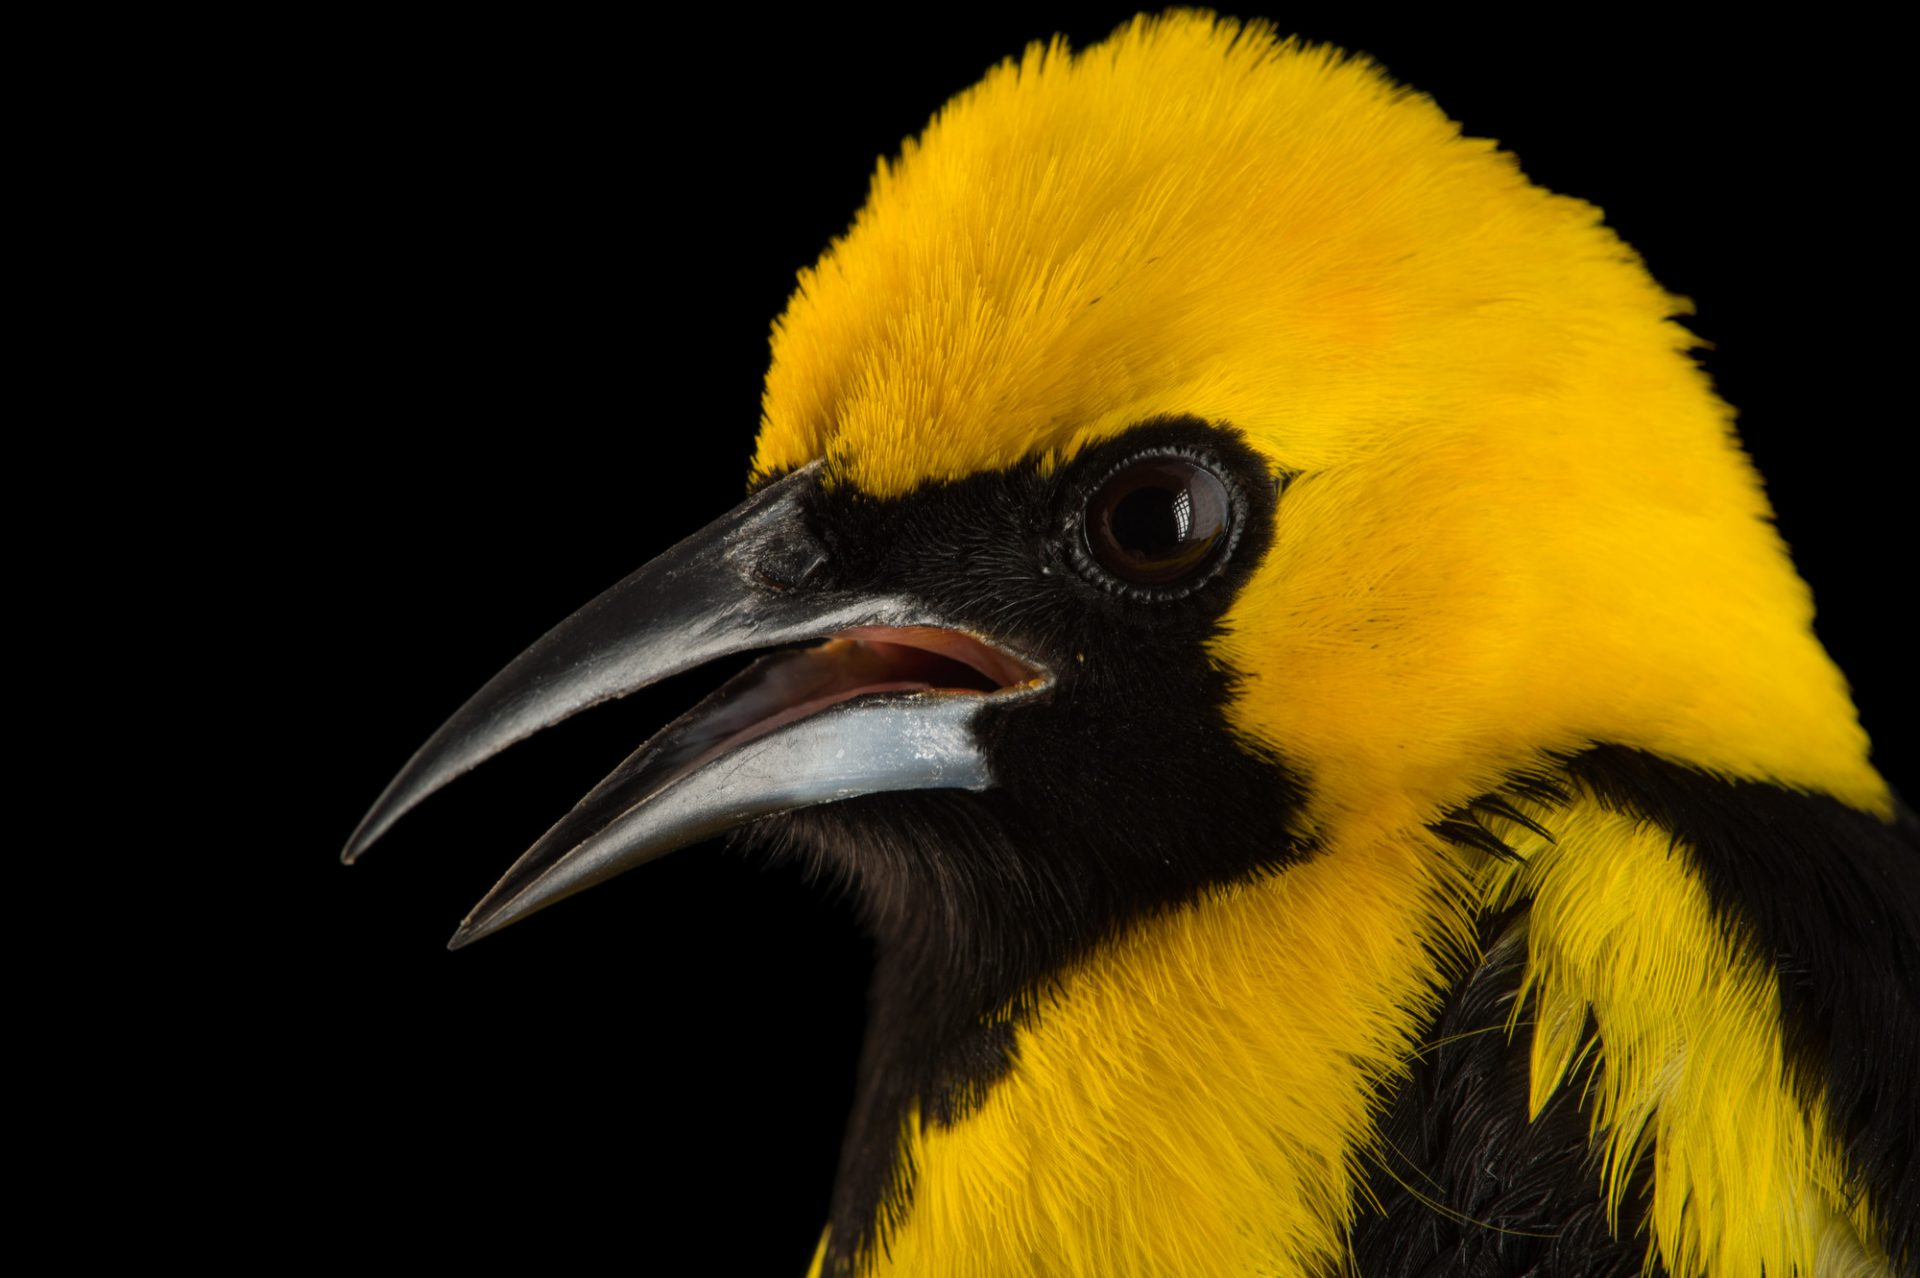 Picture of a yellow-tailed oriole (Icterus mesomelas) at the National Aviary of Colombia